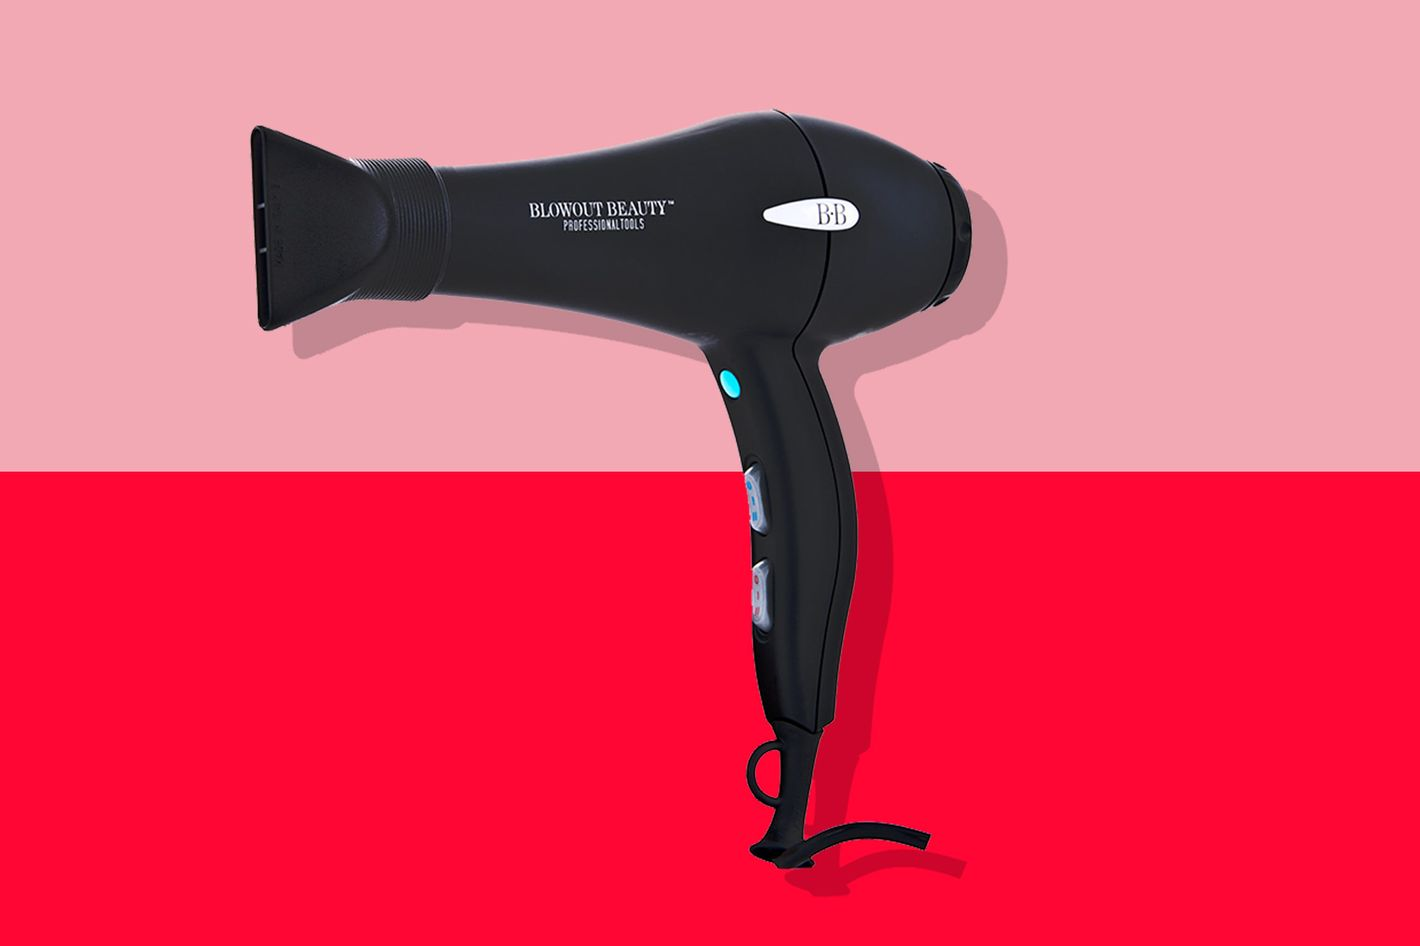 Blowout Beauty Ultra Power Professional Hair Dryer